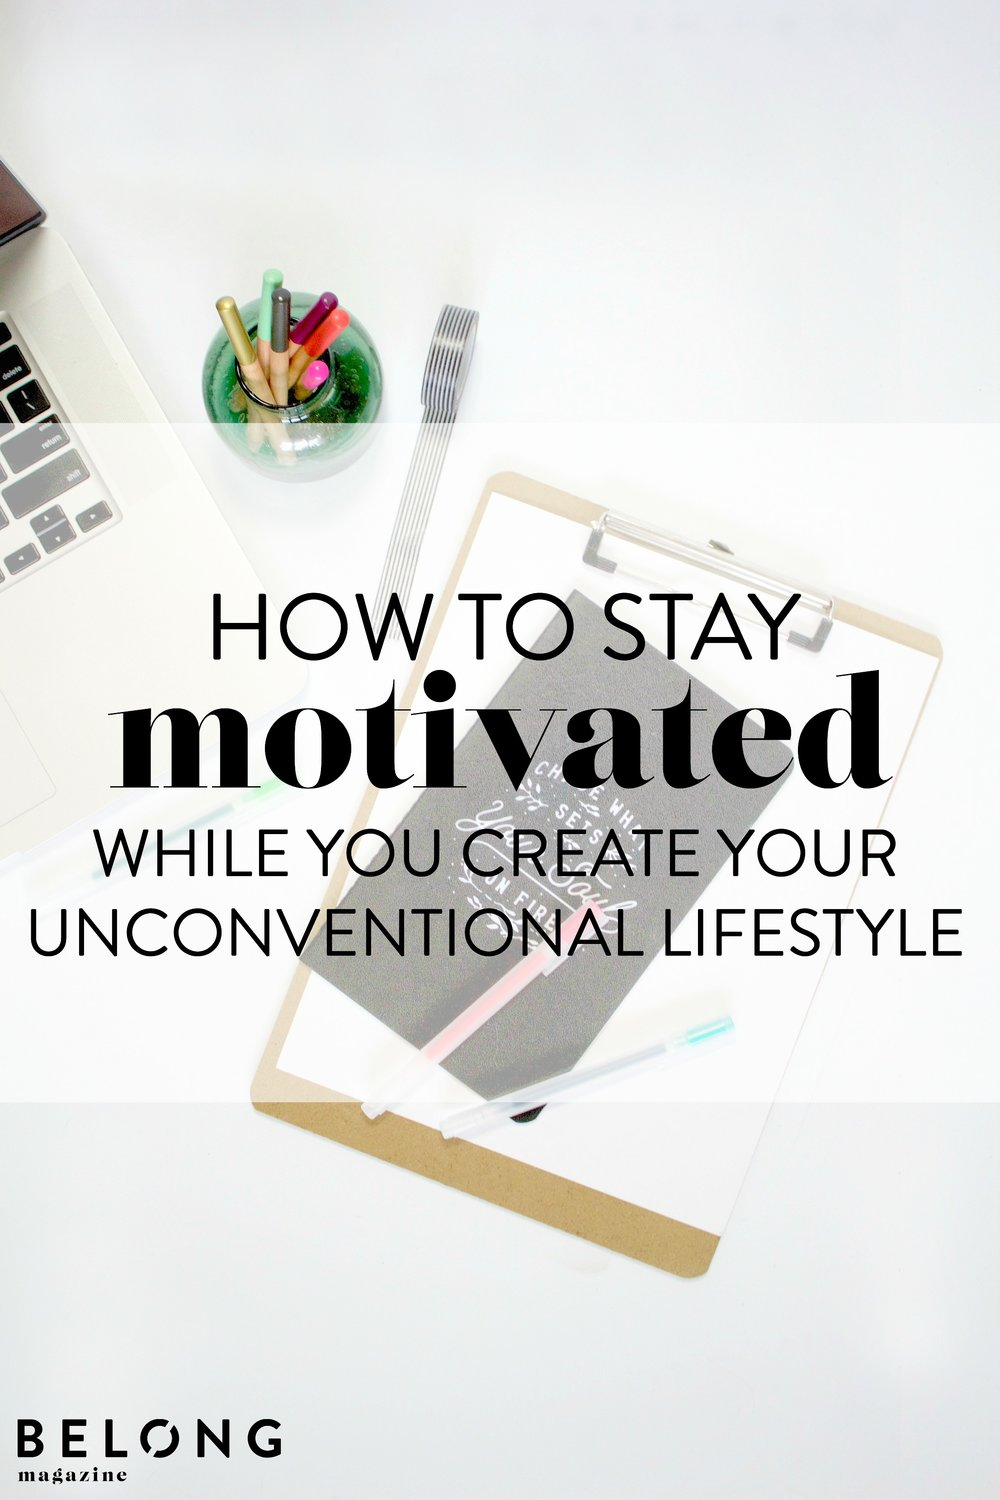 5 Tips to Stay Motivated While You Create You Unconventional Lifestyle for female entrepreneurs and creatives